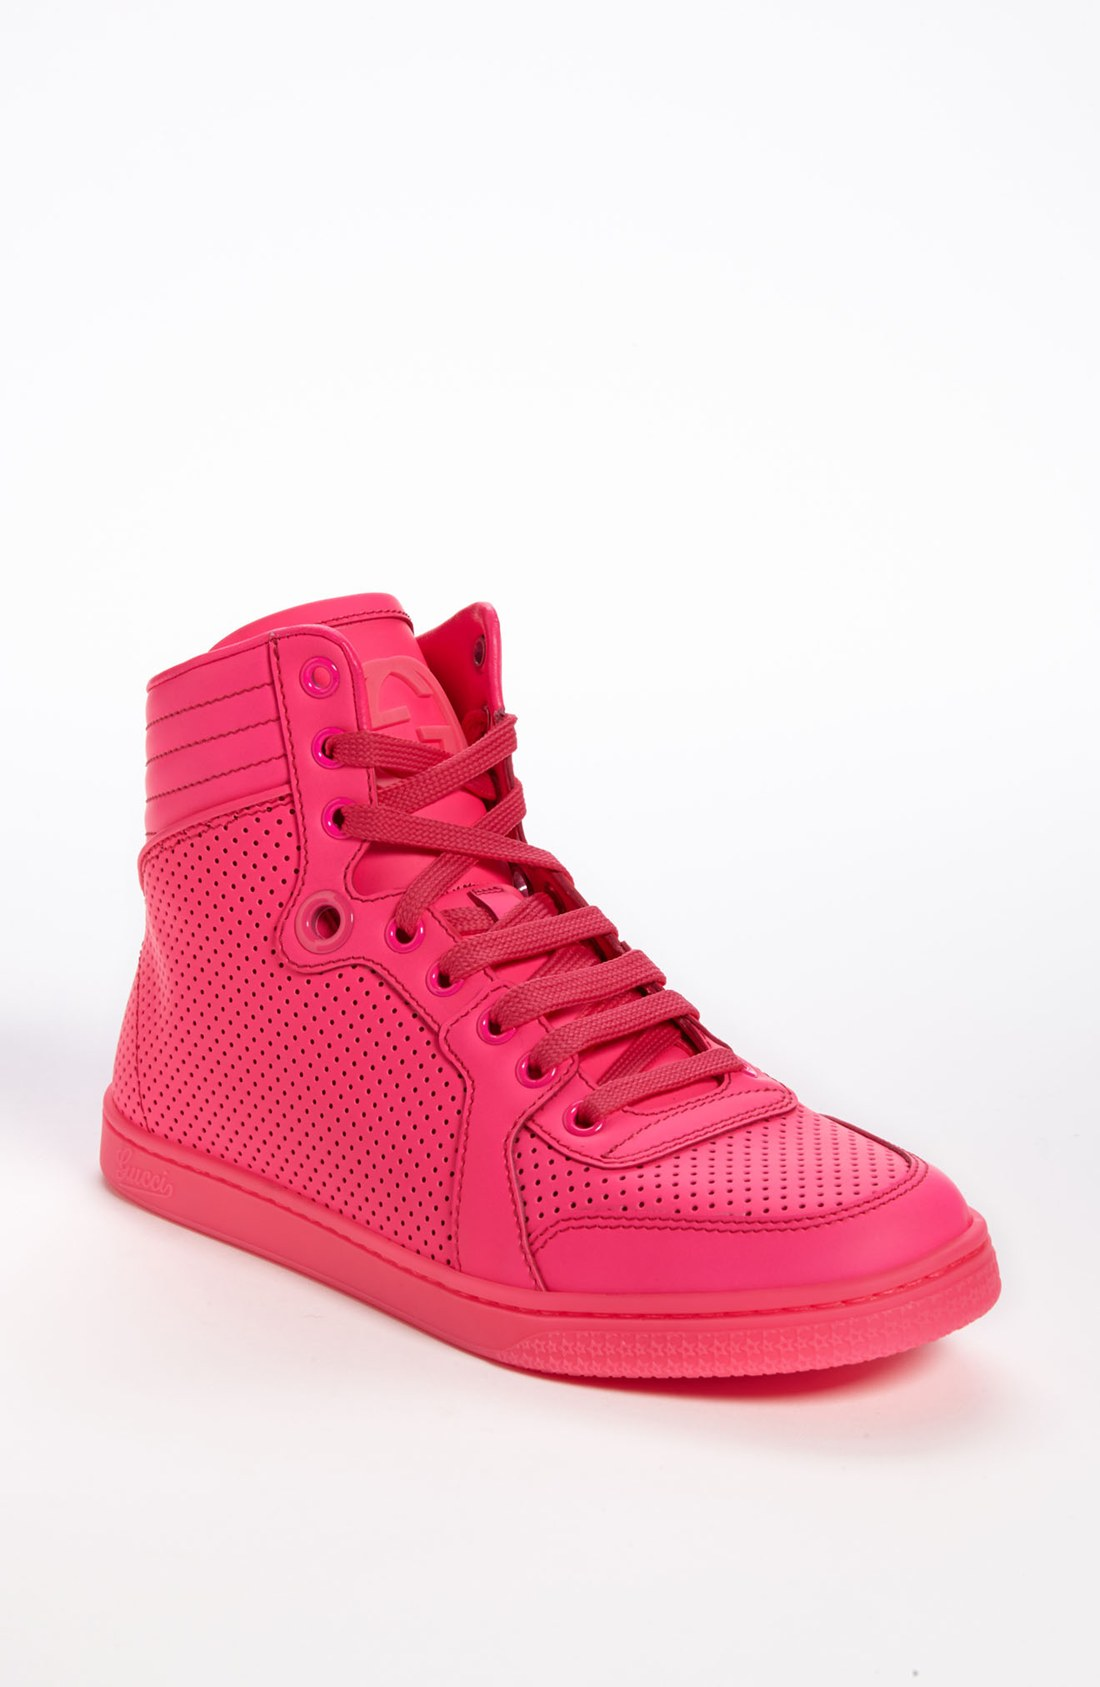 gucci coda high top sneaker in pink lyst. Black Bedroom Furniture Sets. Home Design Ideas